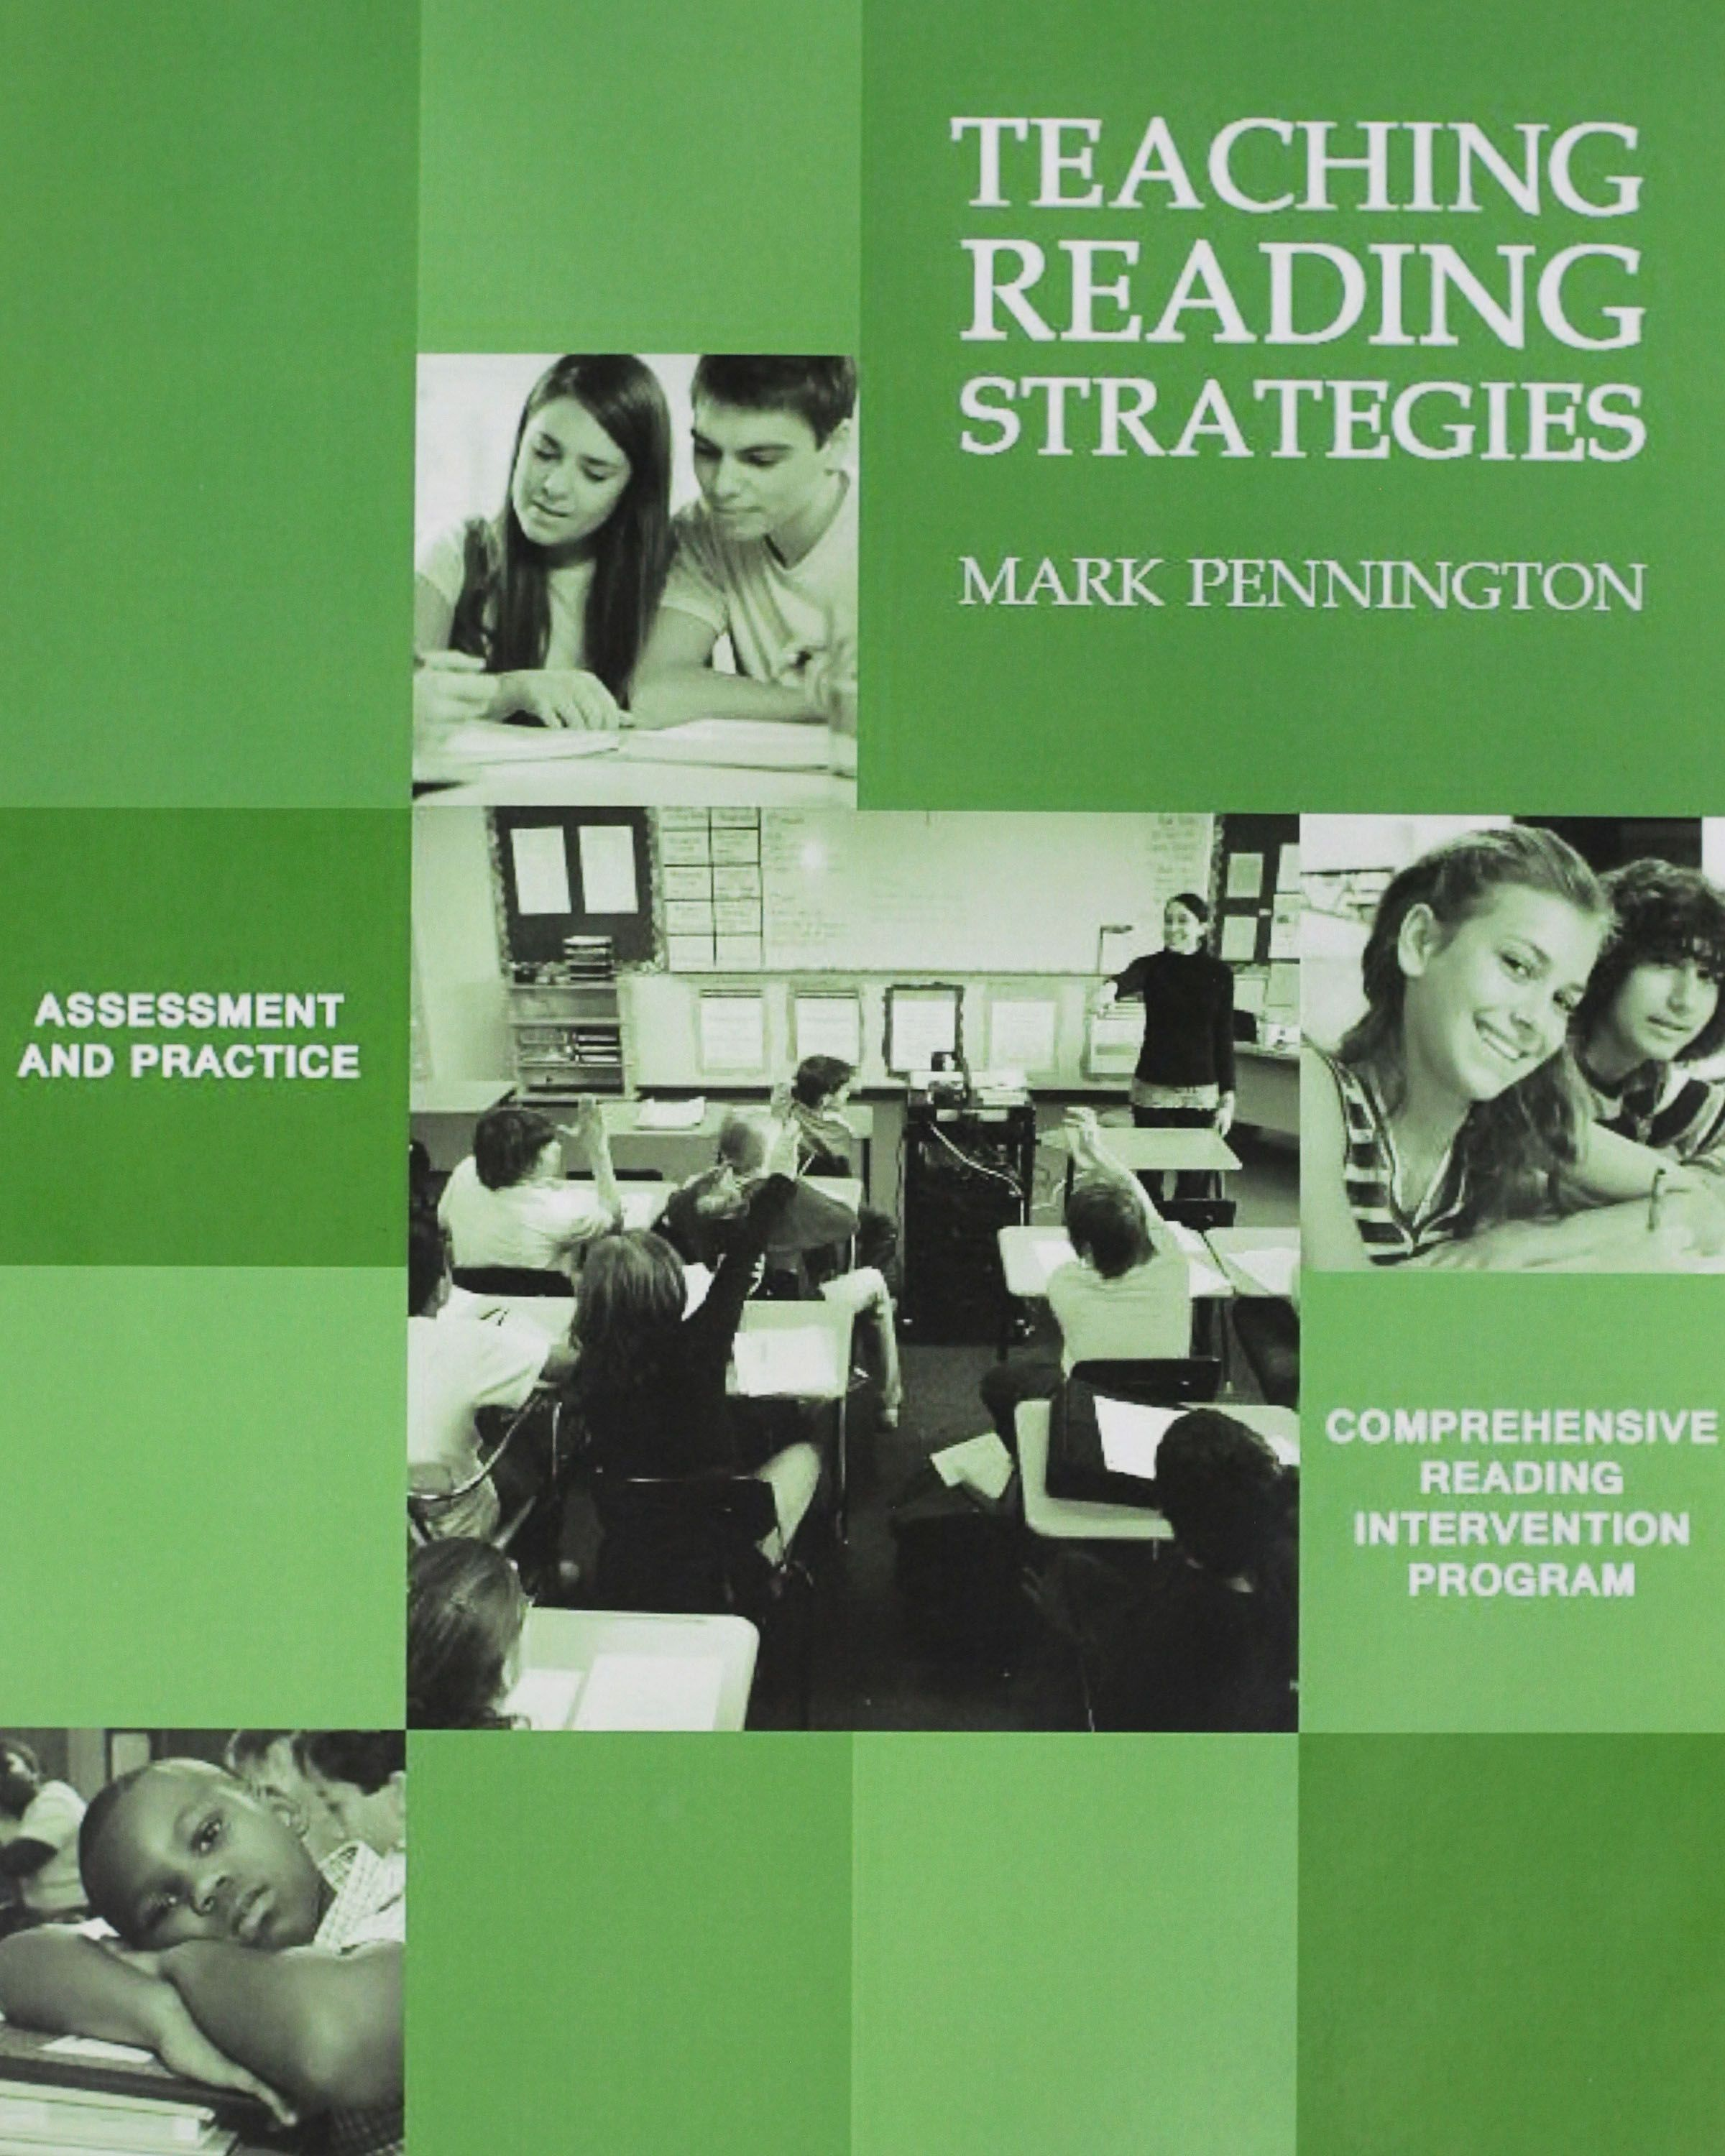 Teaching Reading Strategies Is A Full Year Or Half Year